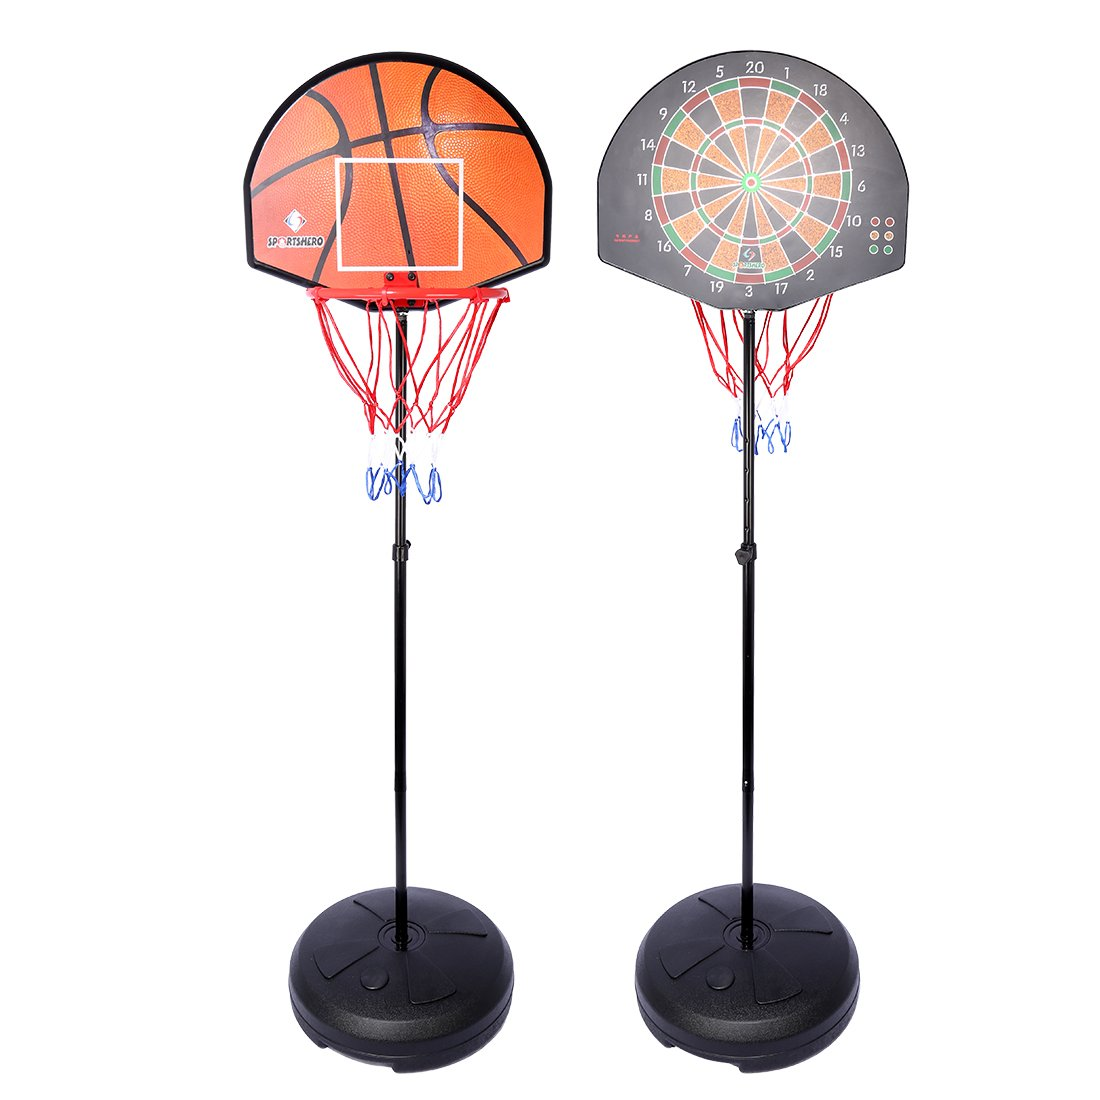 Basketball Stands With Darts Target